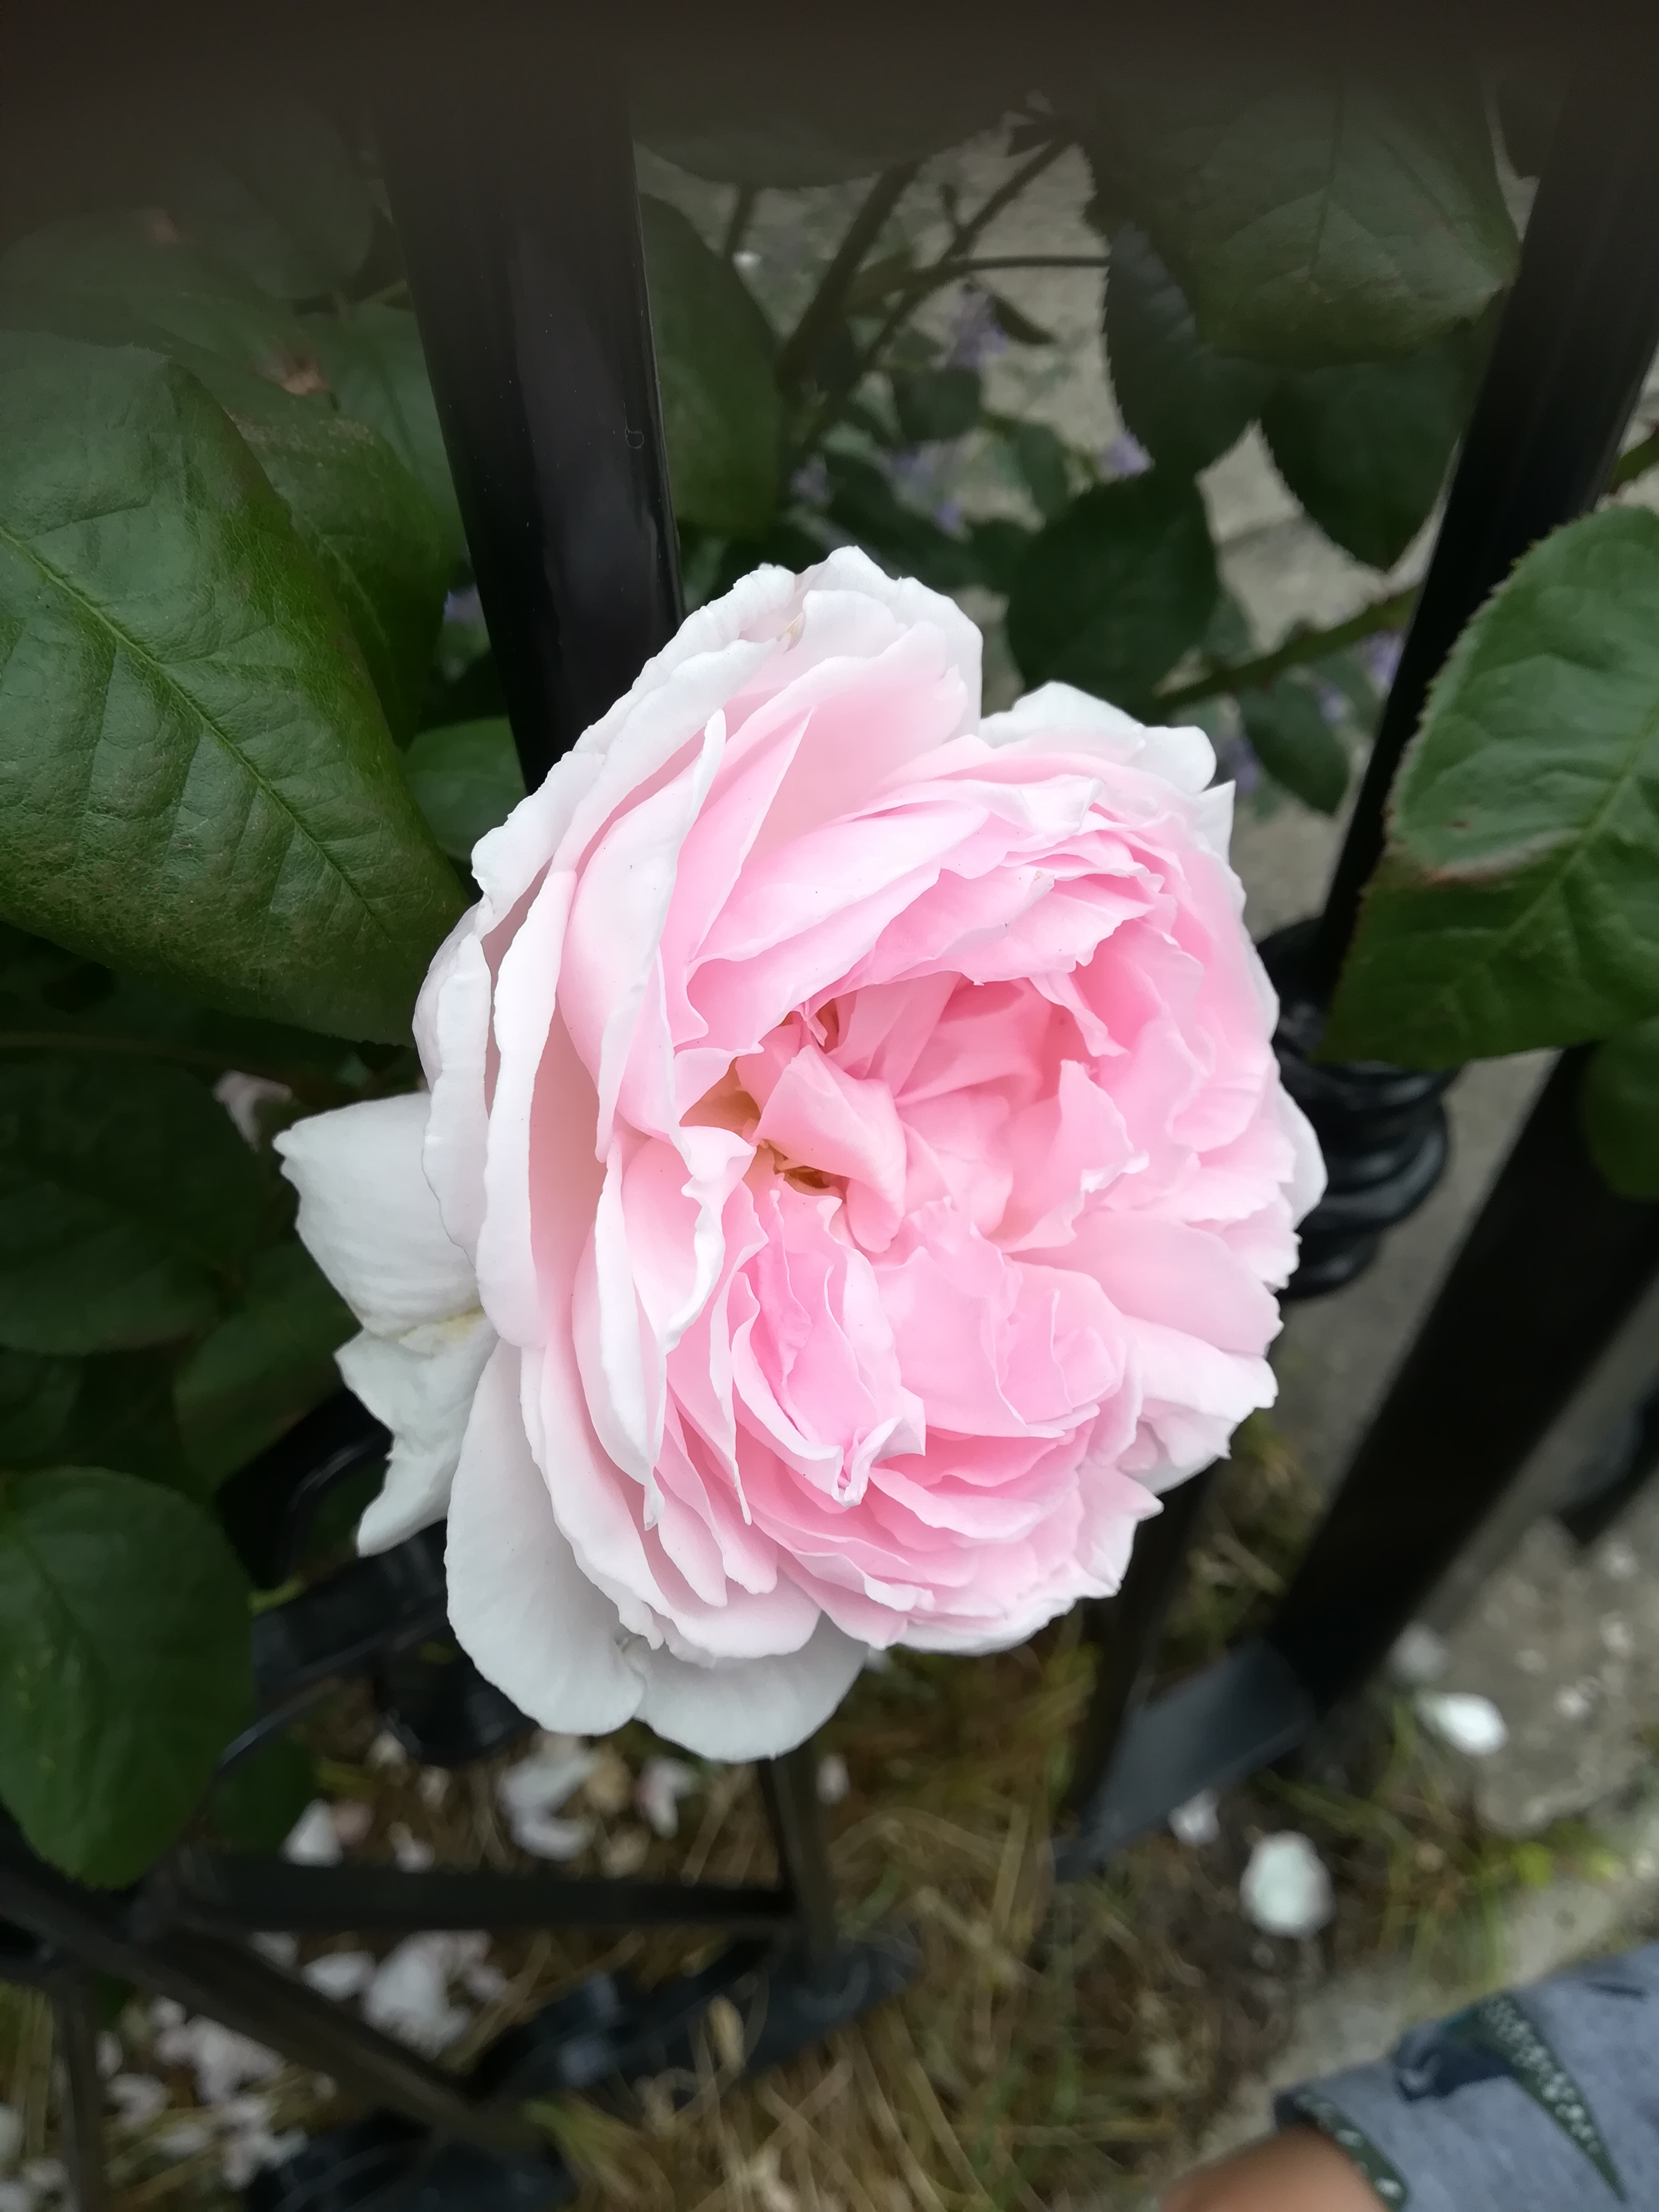 a pink rose in full bloom peeps out from between the black bars of a fence